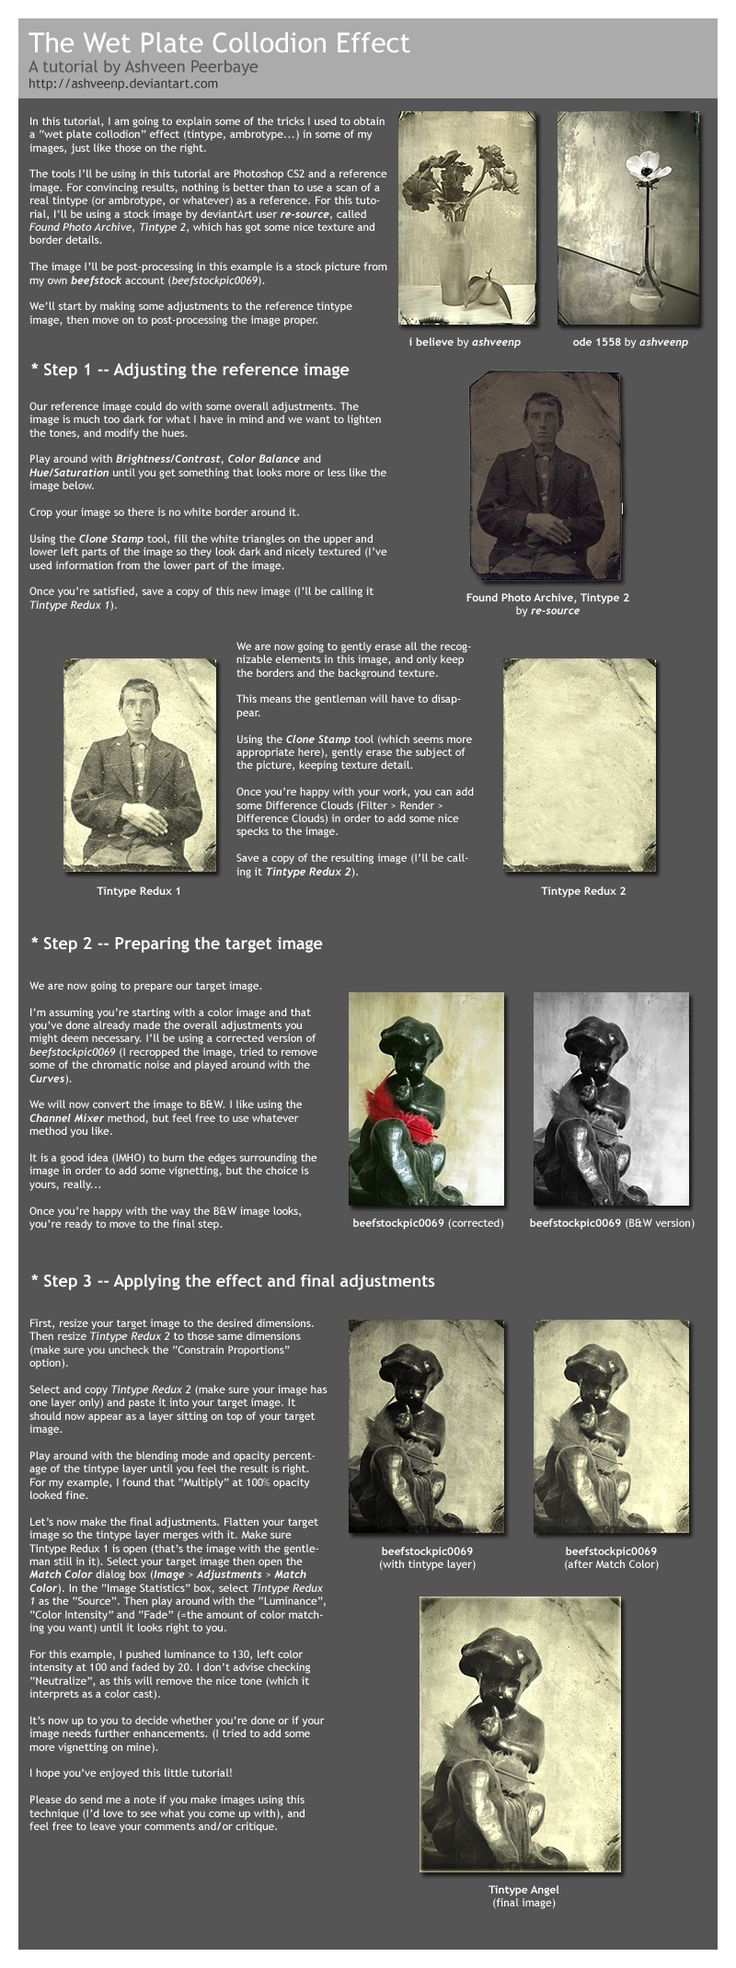 Wet Plate Collodion Effect  by ~beefstock